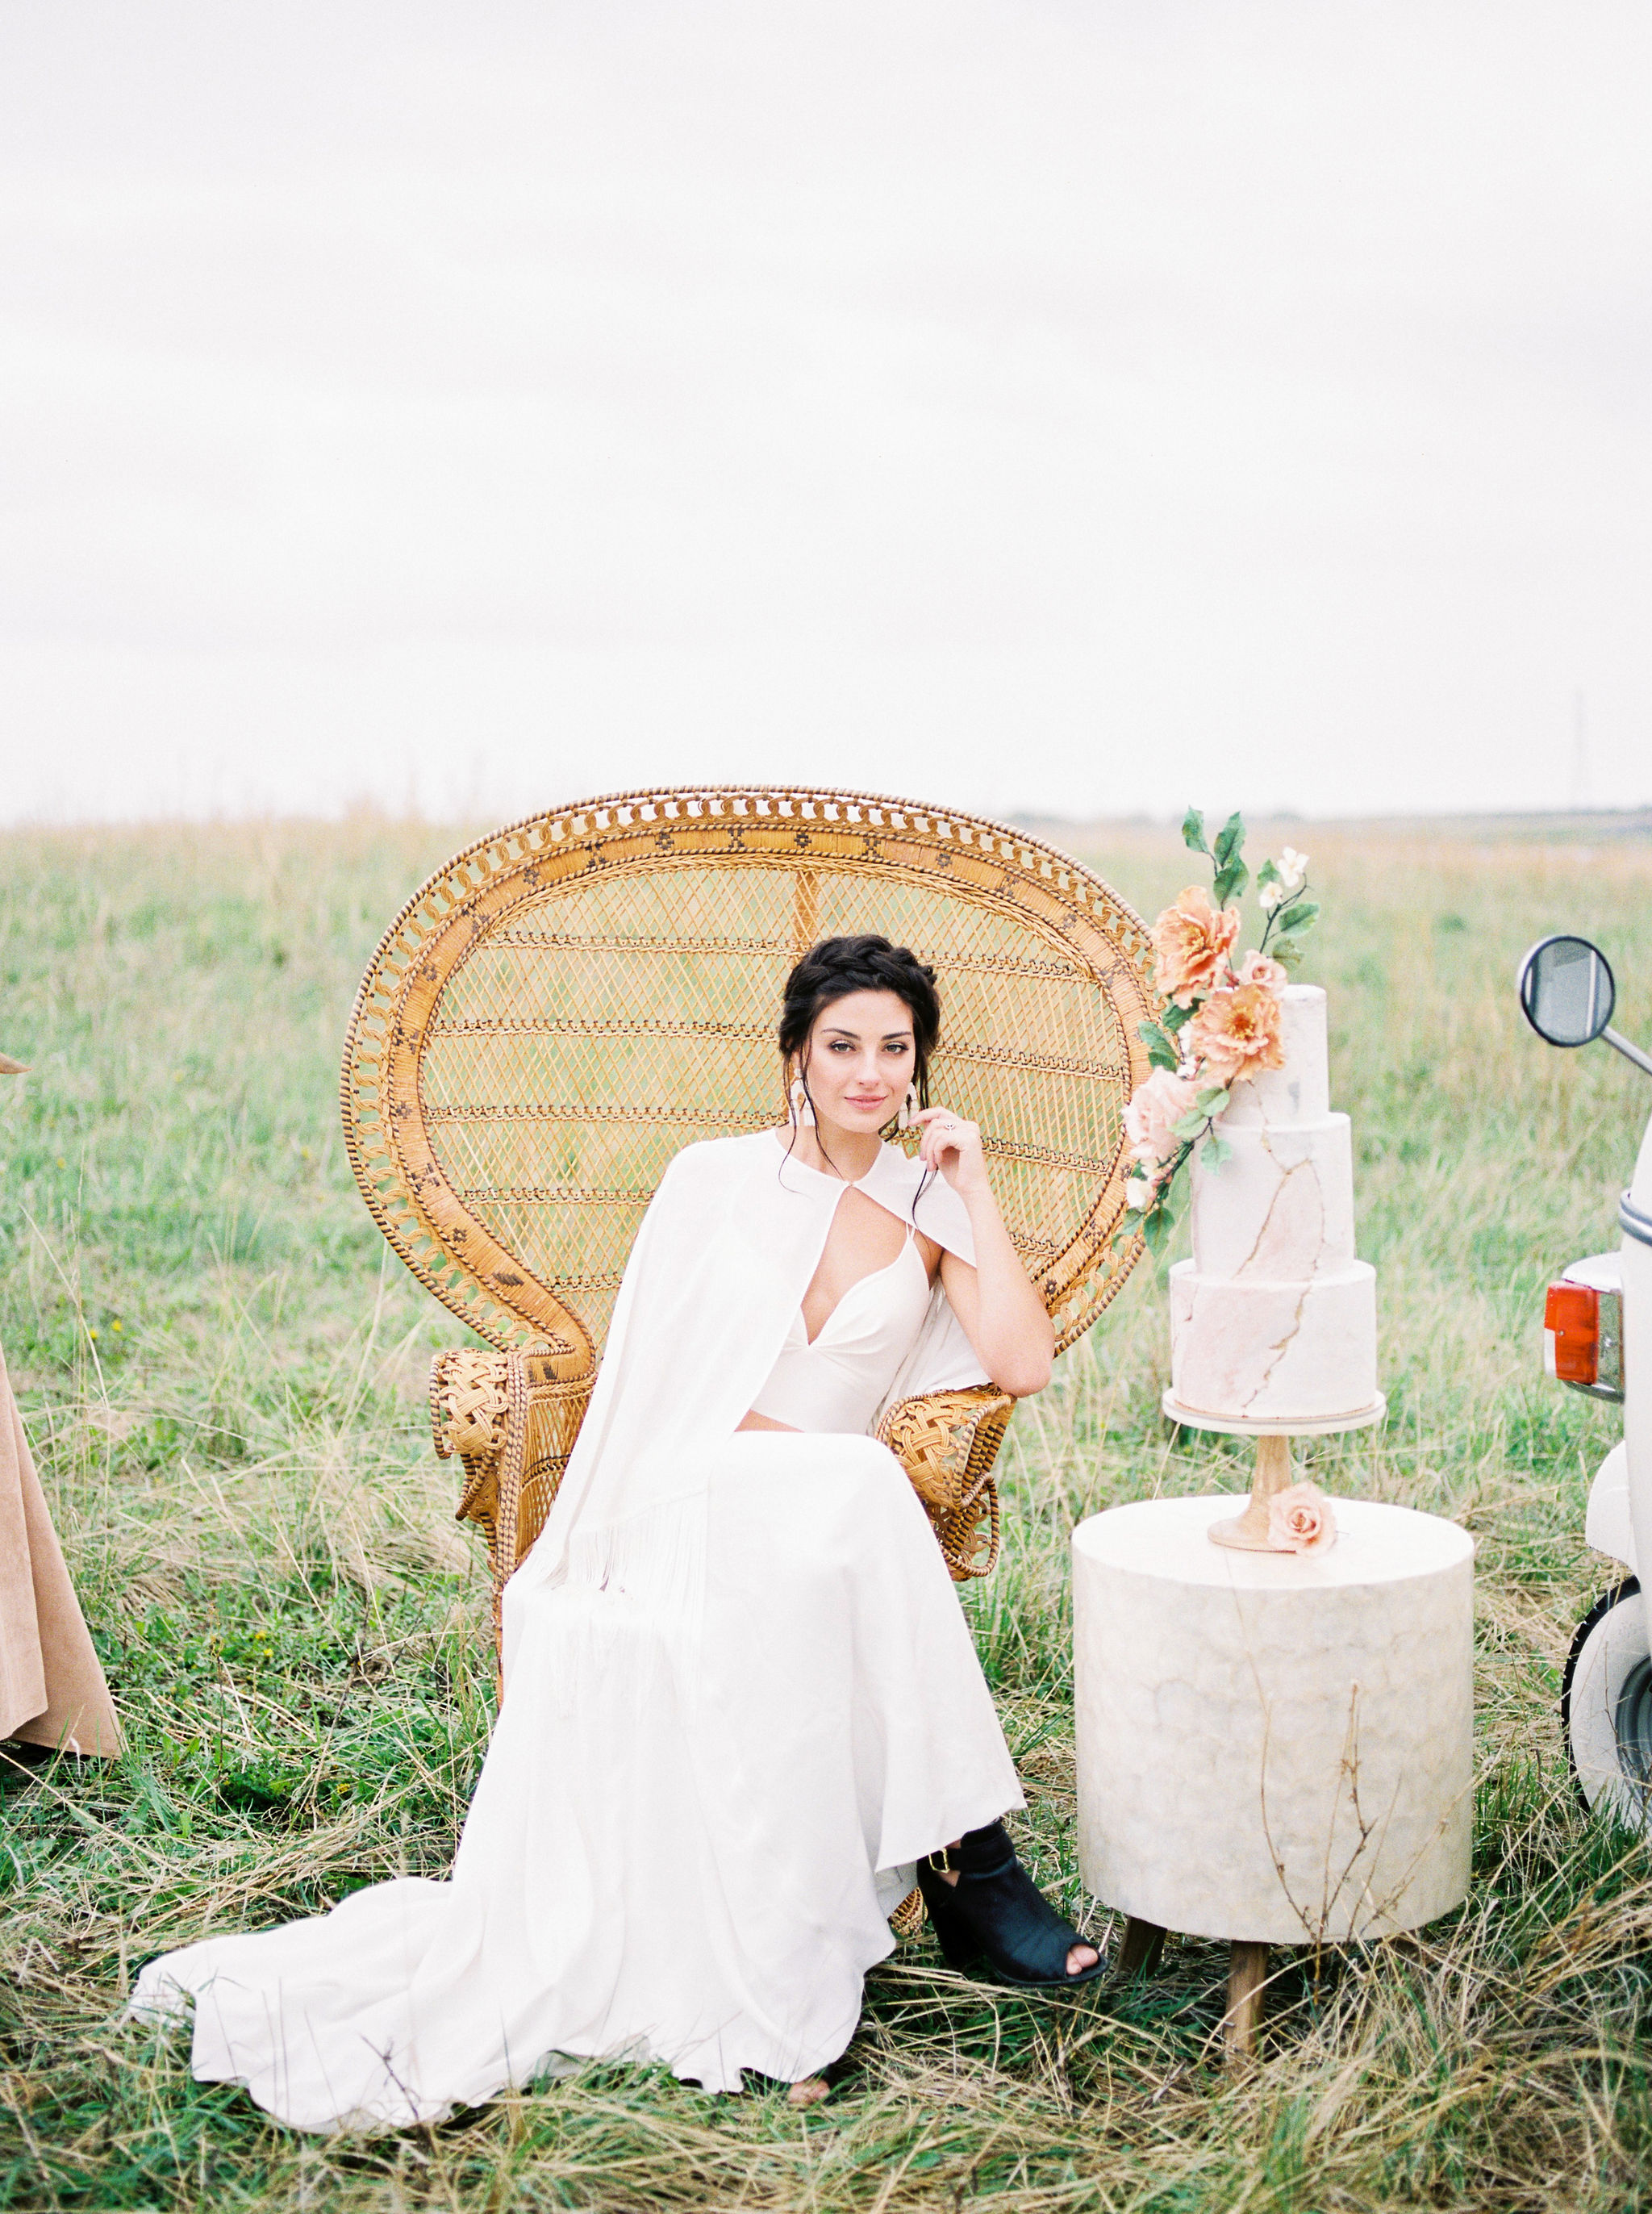 Modern Terracotta Inspiration Shoot // An Ethereal Editorial at Ralph Klein Park - on the Bronte Bride Blog